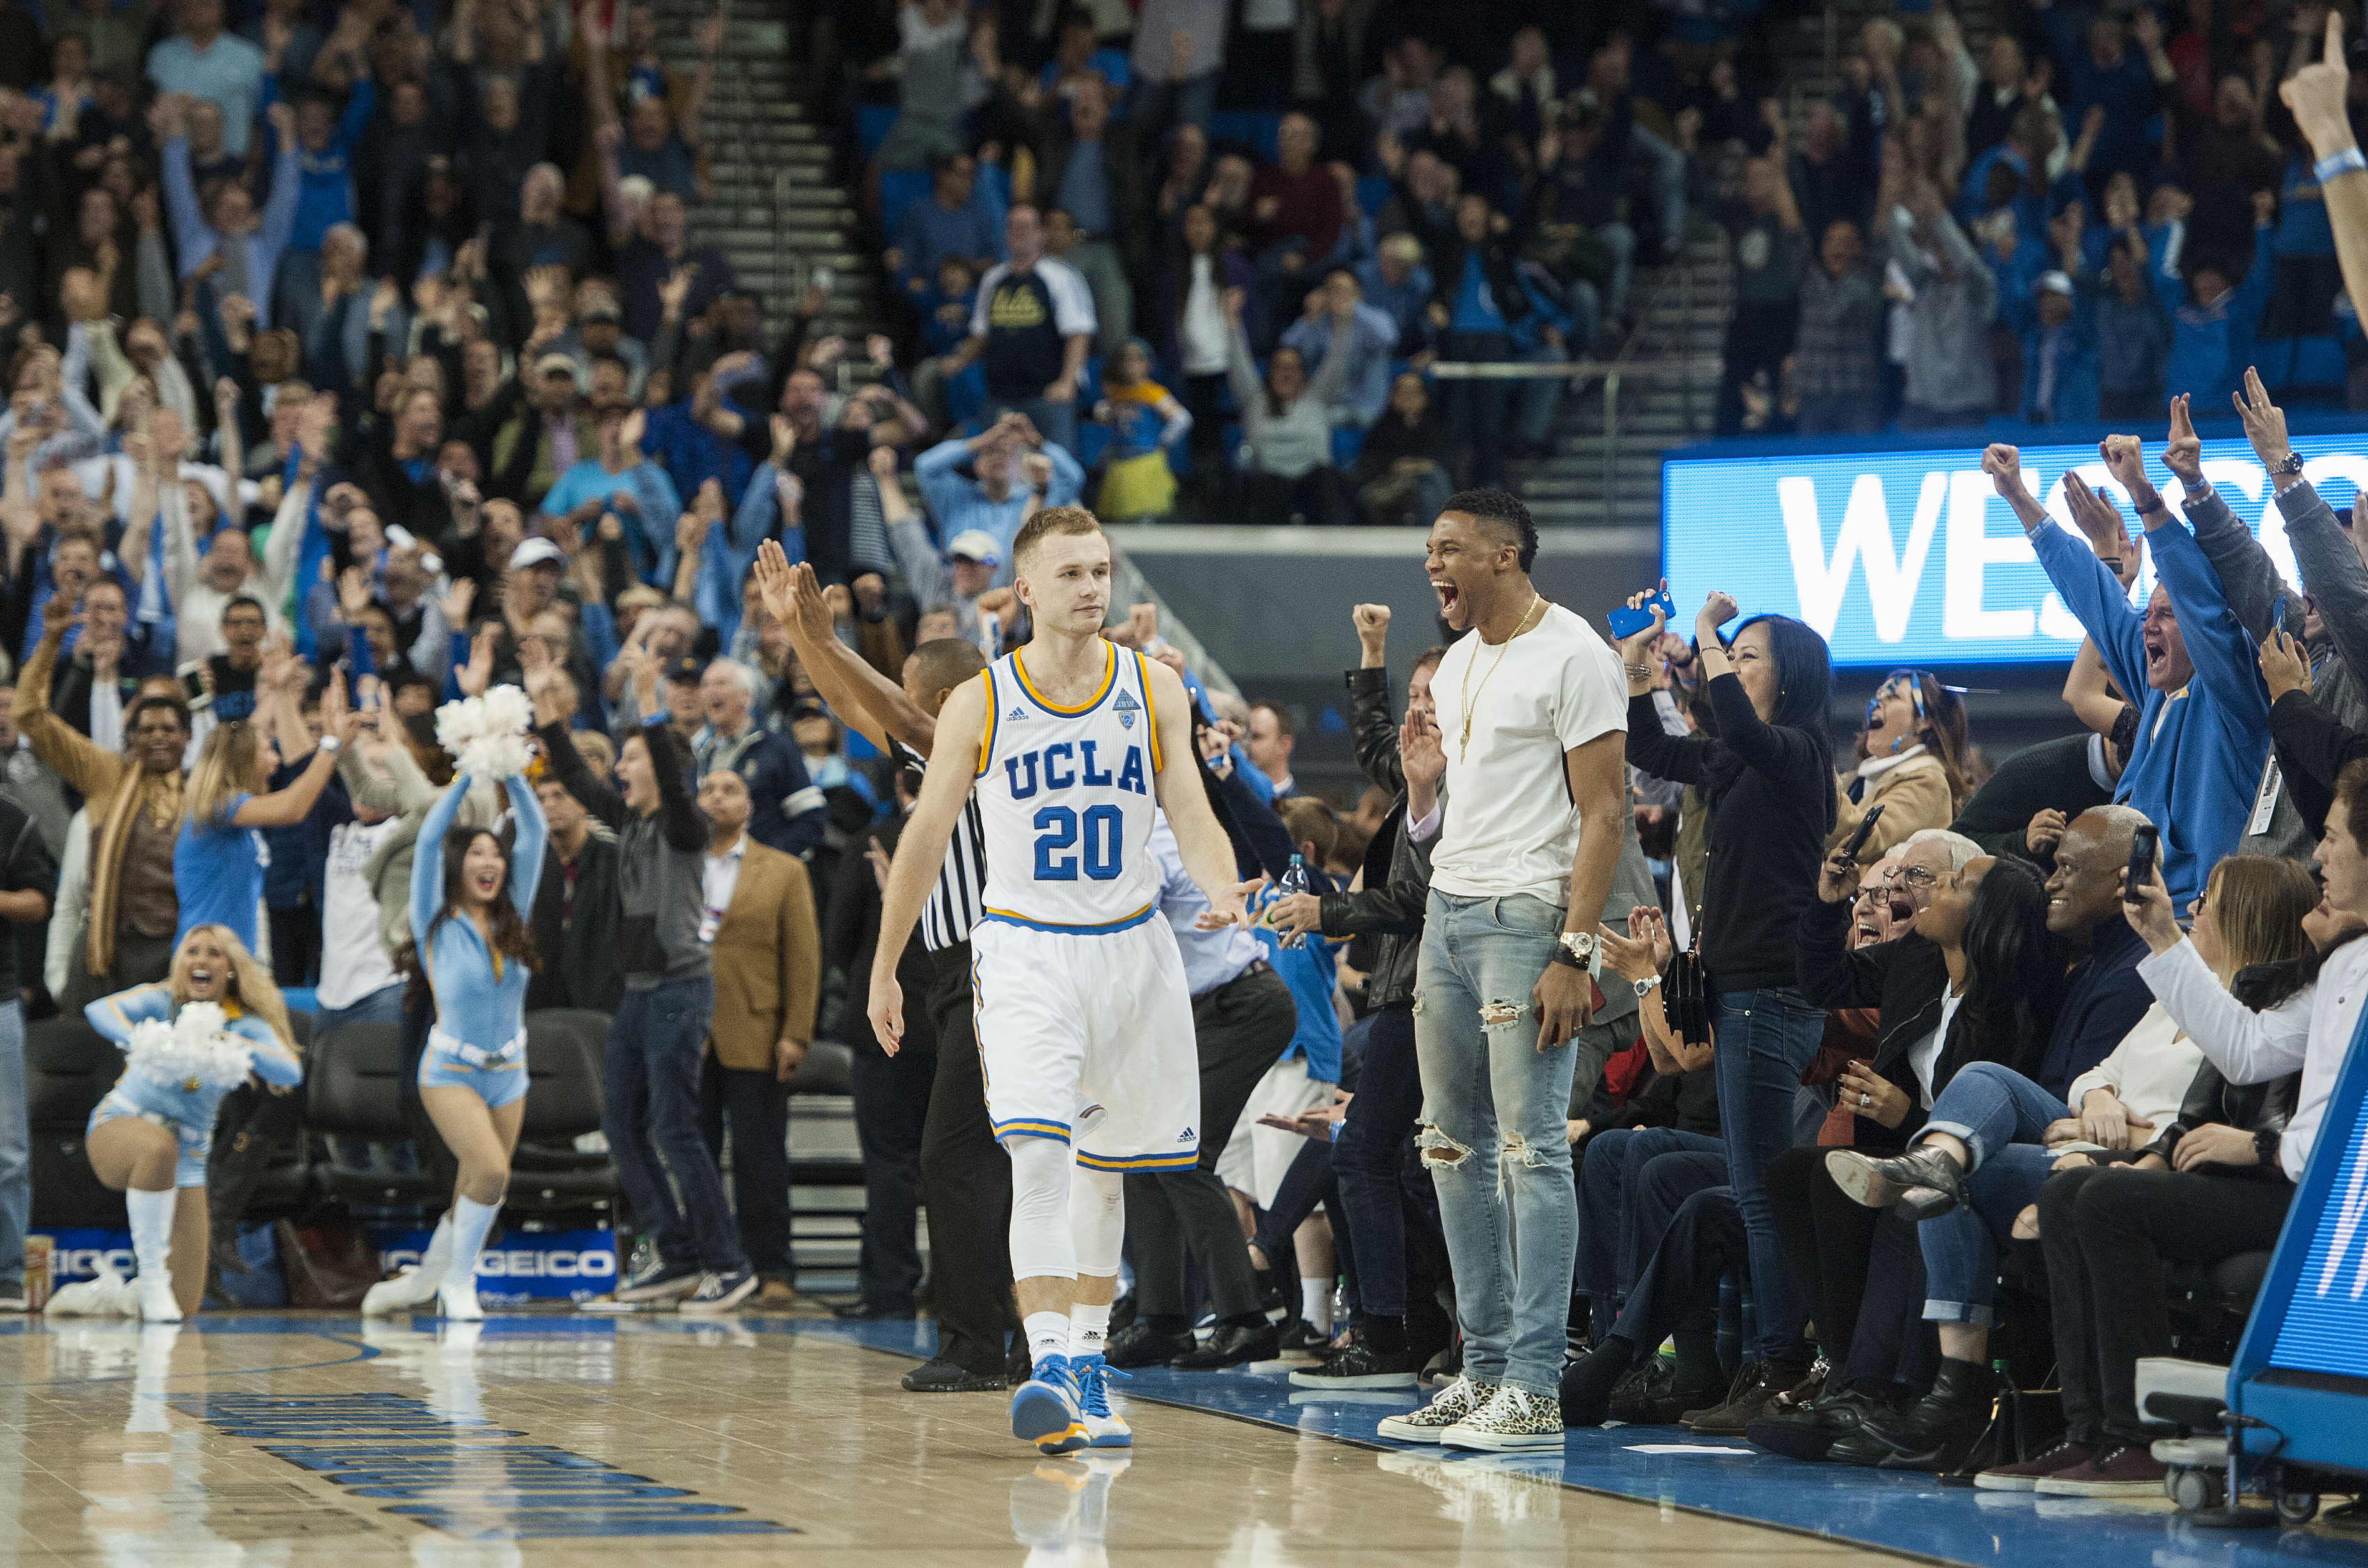 Oklahoma Cirty Thunder's Russell Westbrook joins the crowd in celebrating after UCLA's Bryce Alford (20) sank a 3-pointer to give UCLA an 87-84 victory over Arizona in an NCAA college basketball game Thursday night, Jan. 7, 2016, in Los Angeles. (Kevin Su